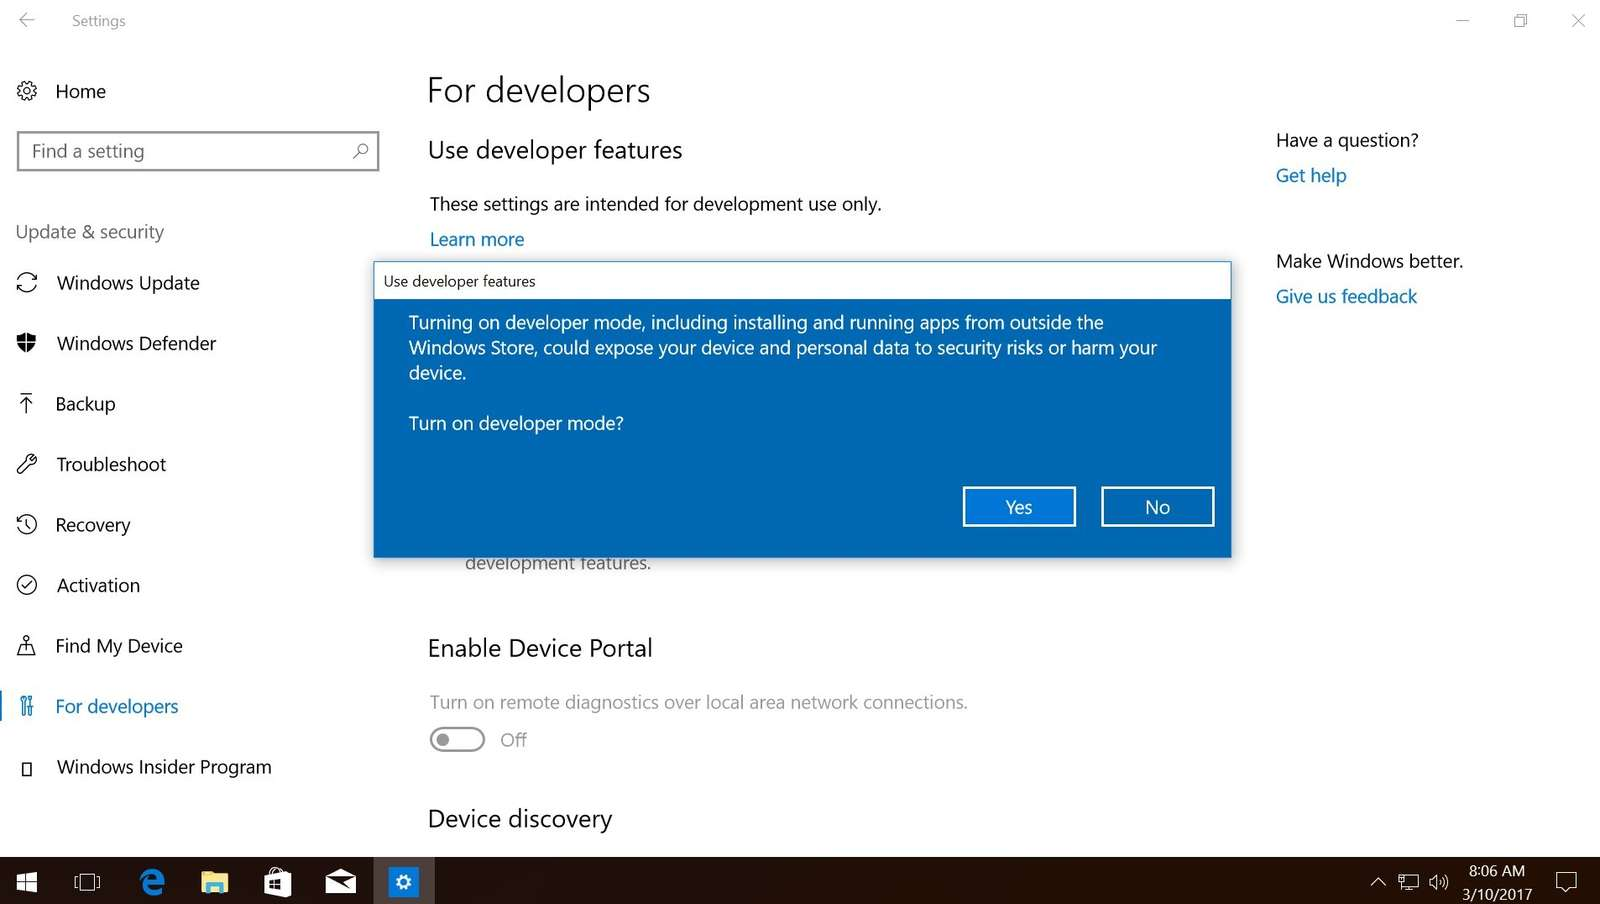 GUIDE: How to set up the perfect Windows development environment